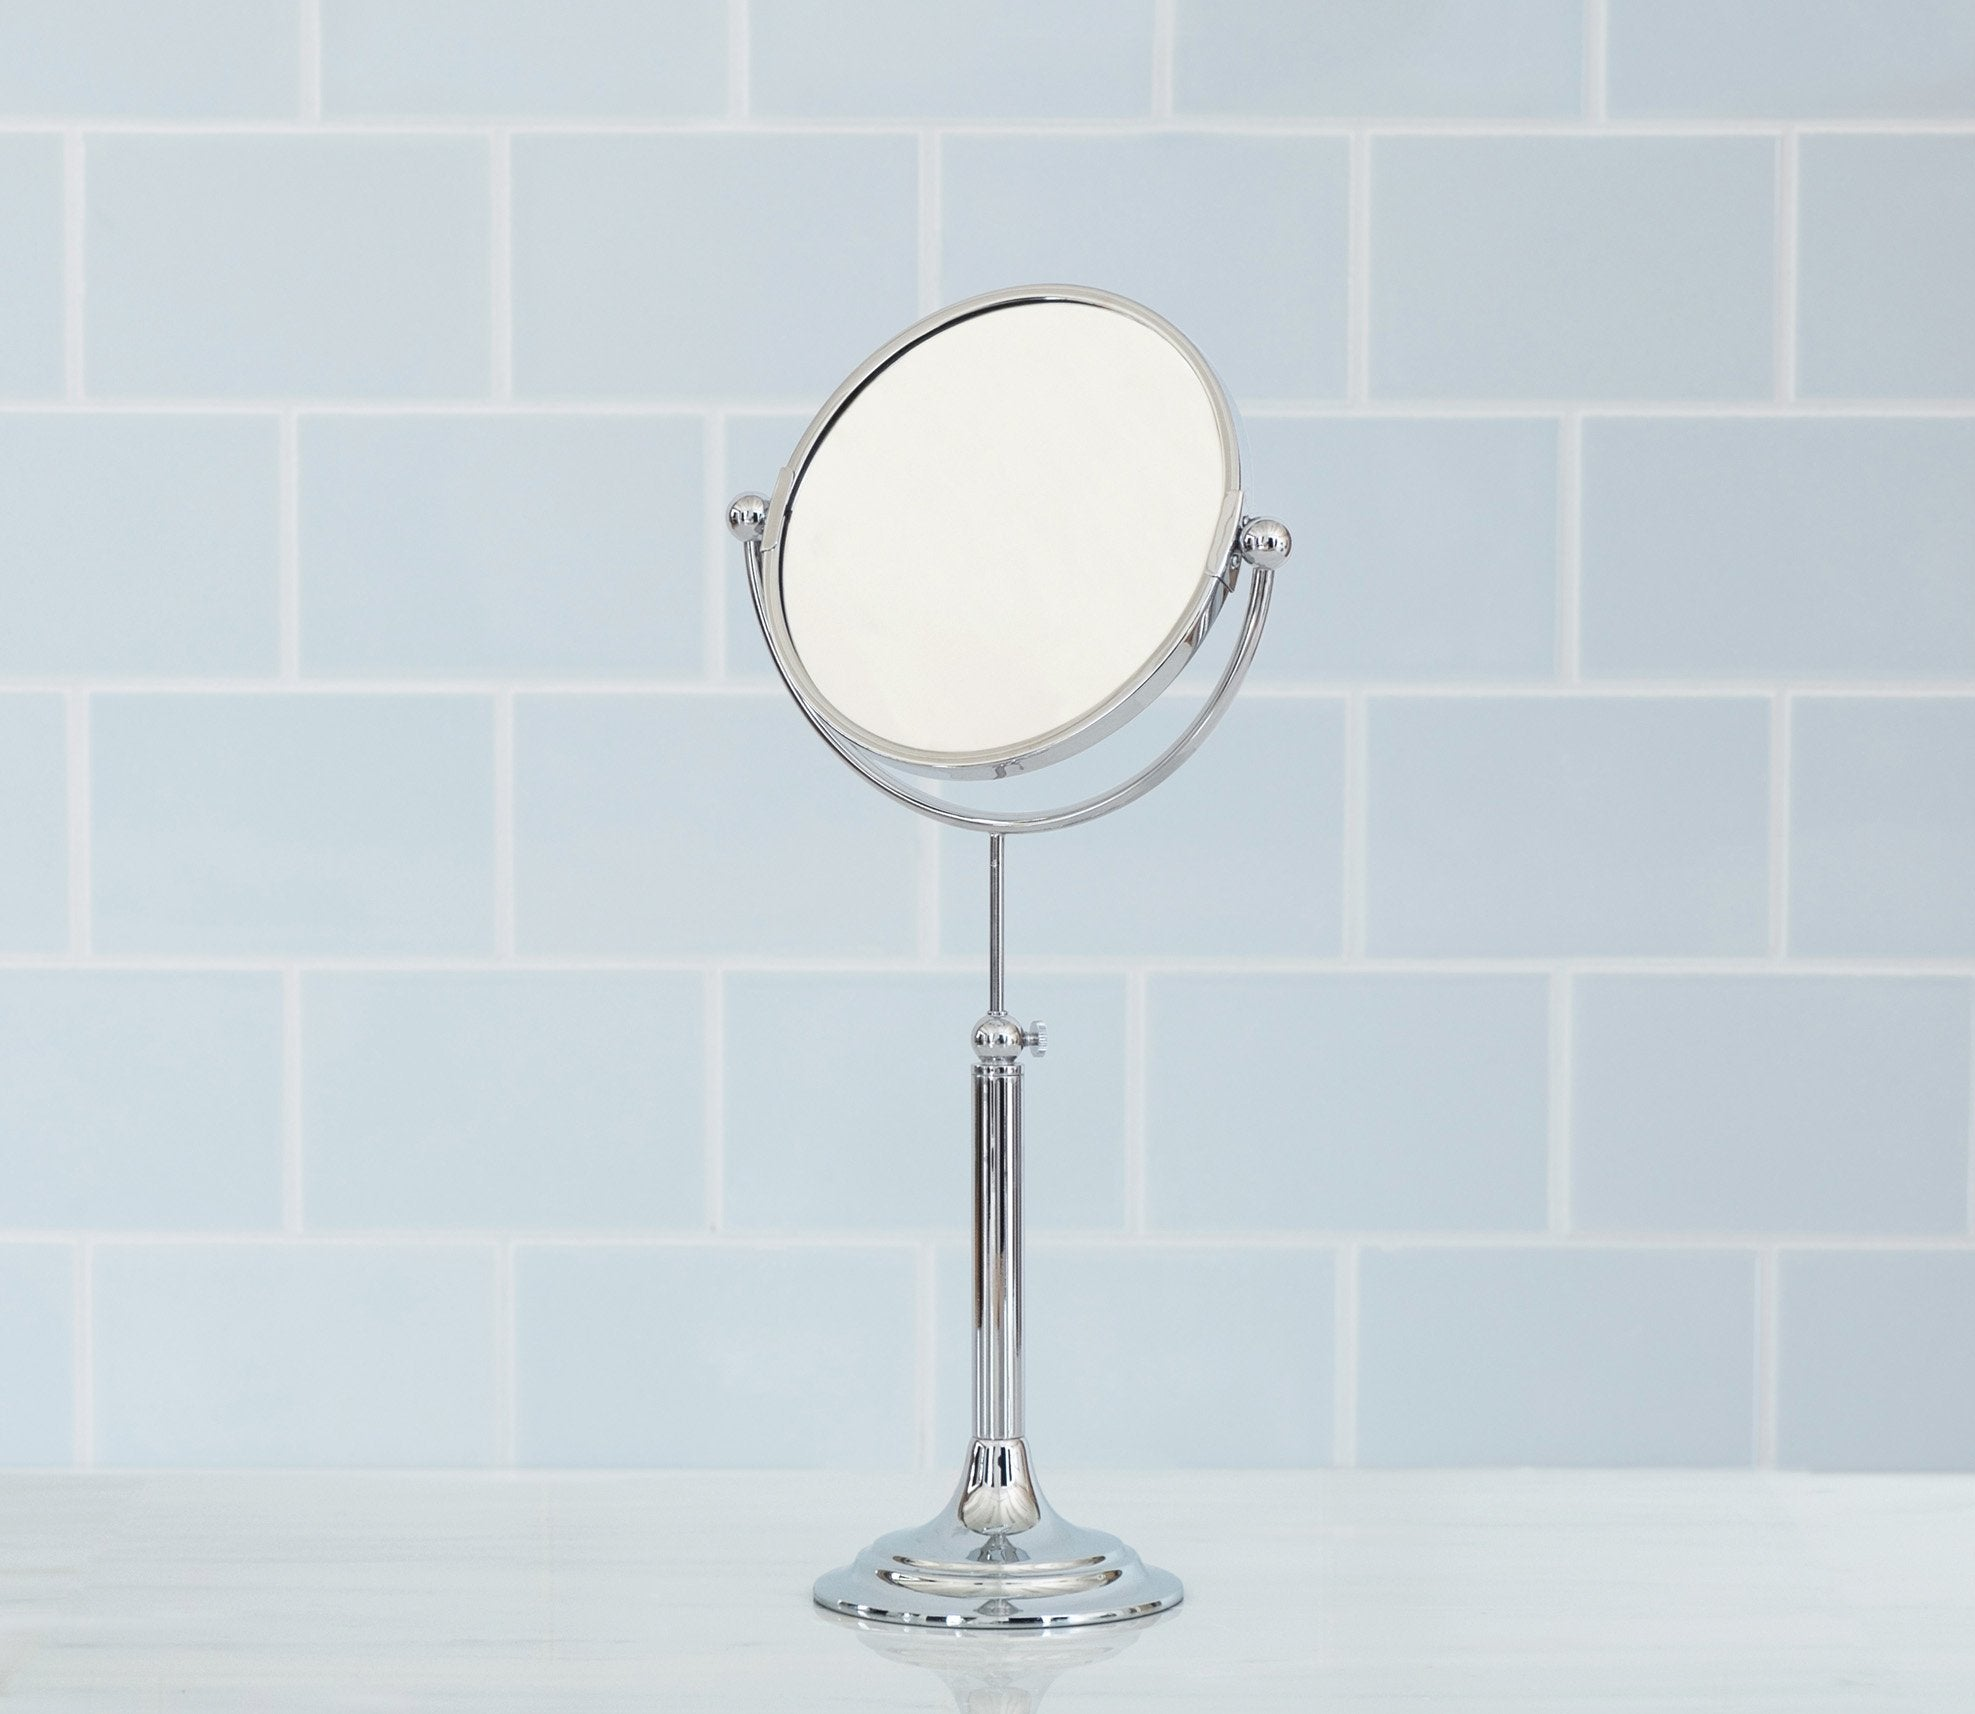 Make Up Mirror Large Product Image 1